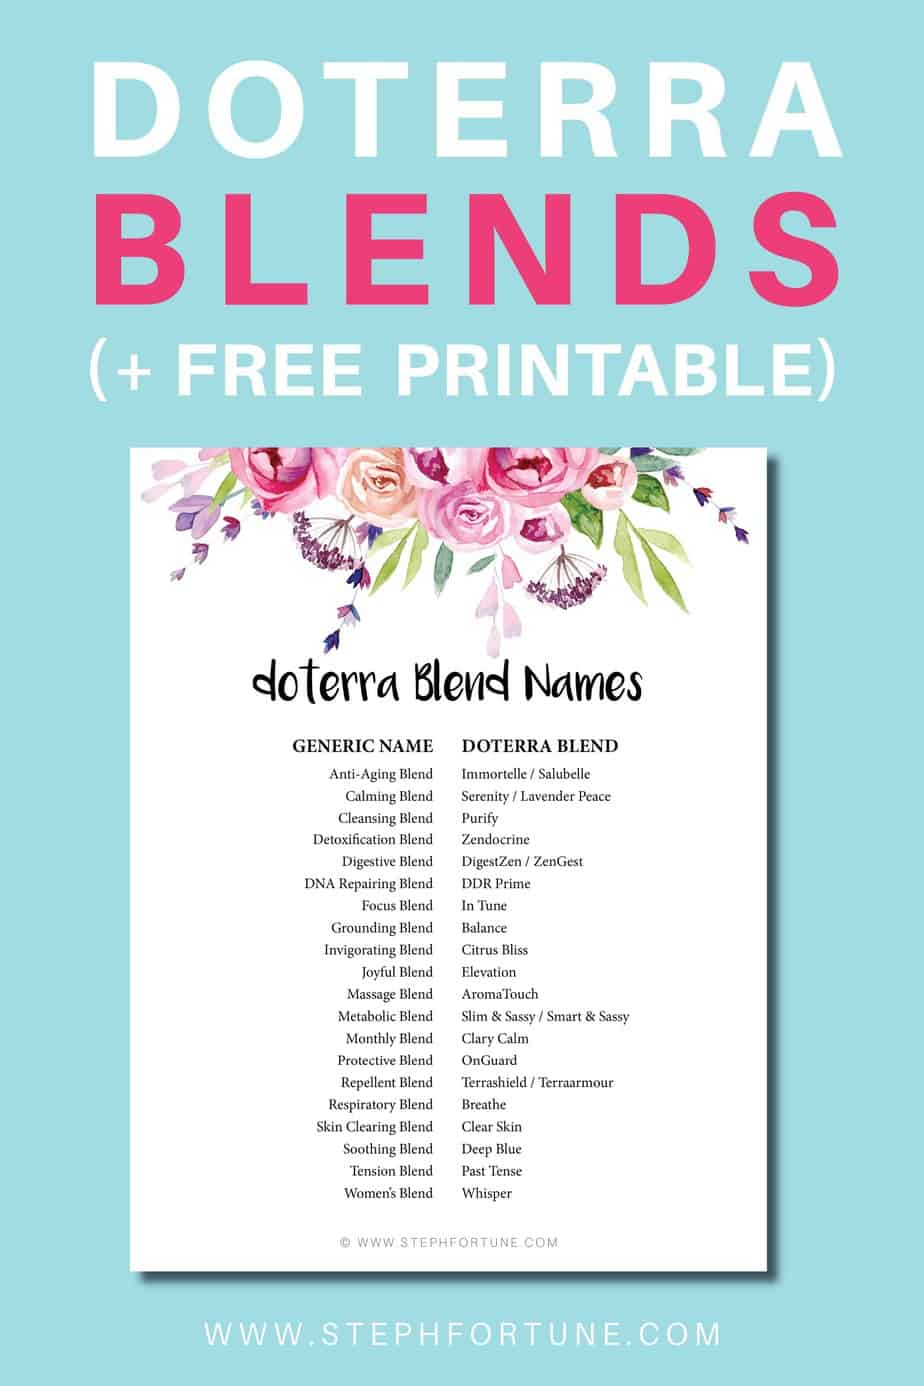 doTERRA Blends Chart FREE Printable